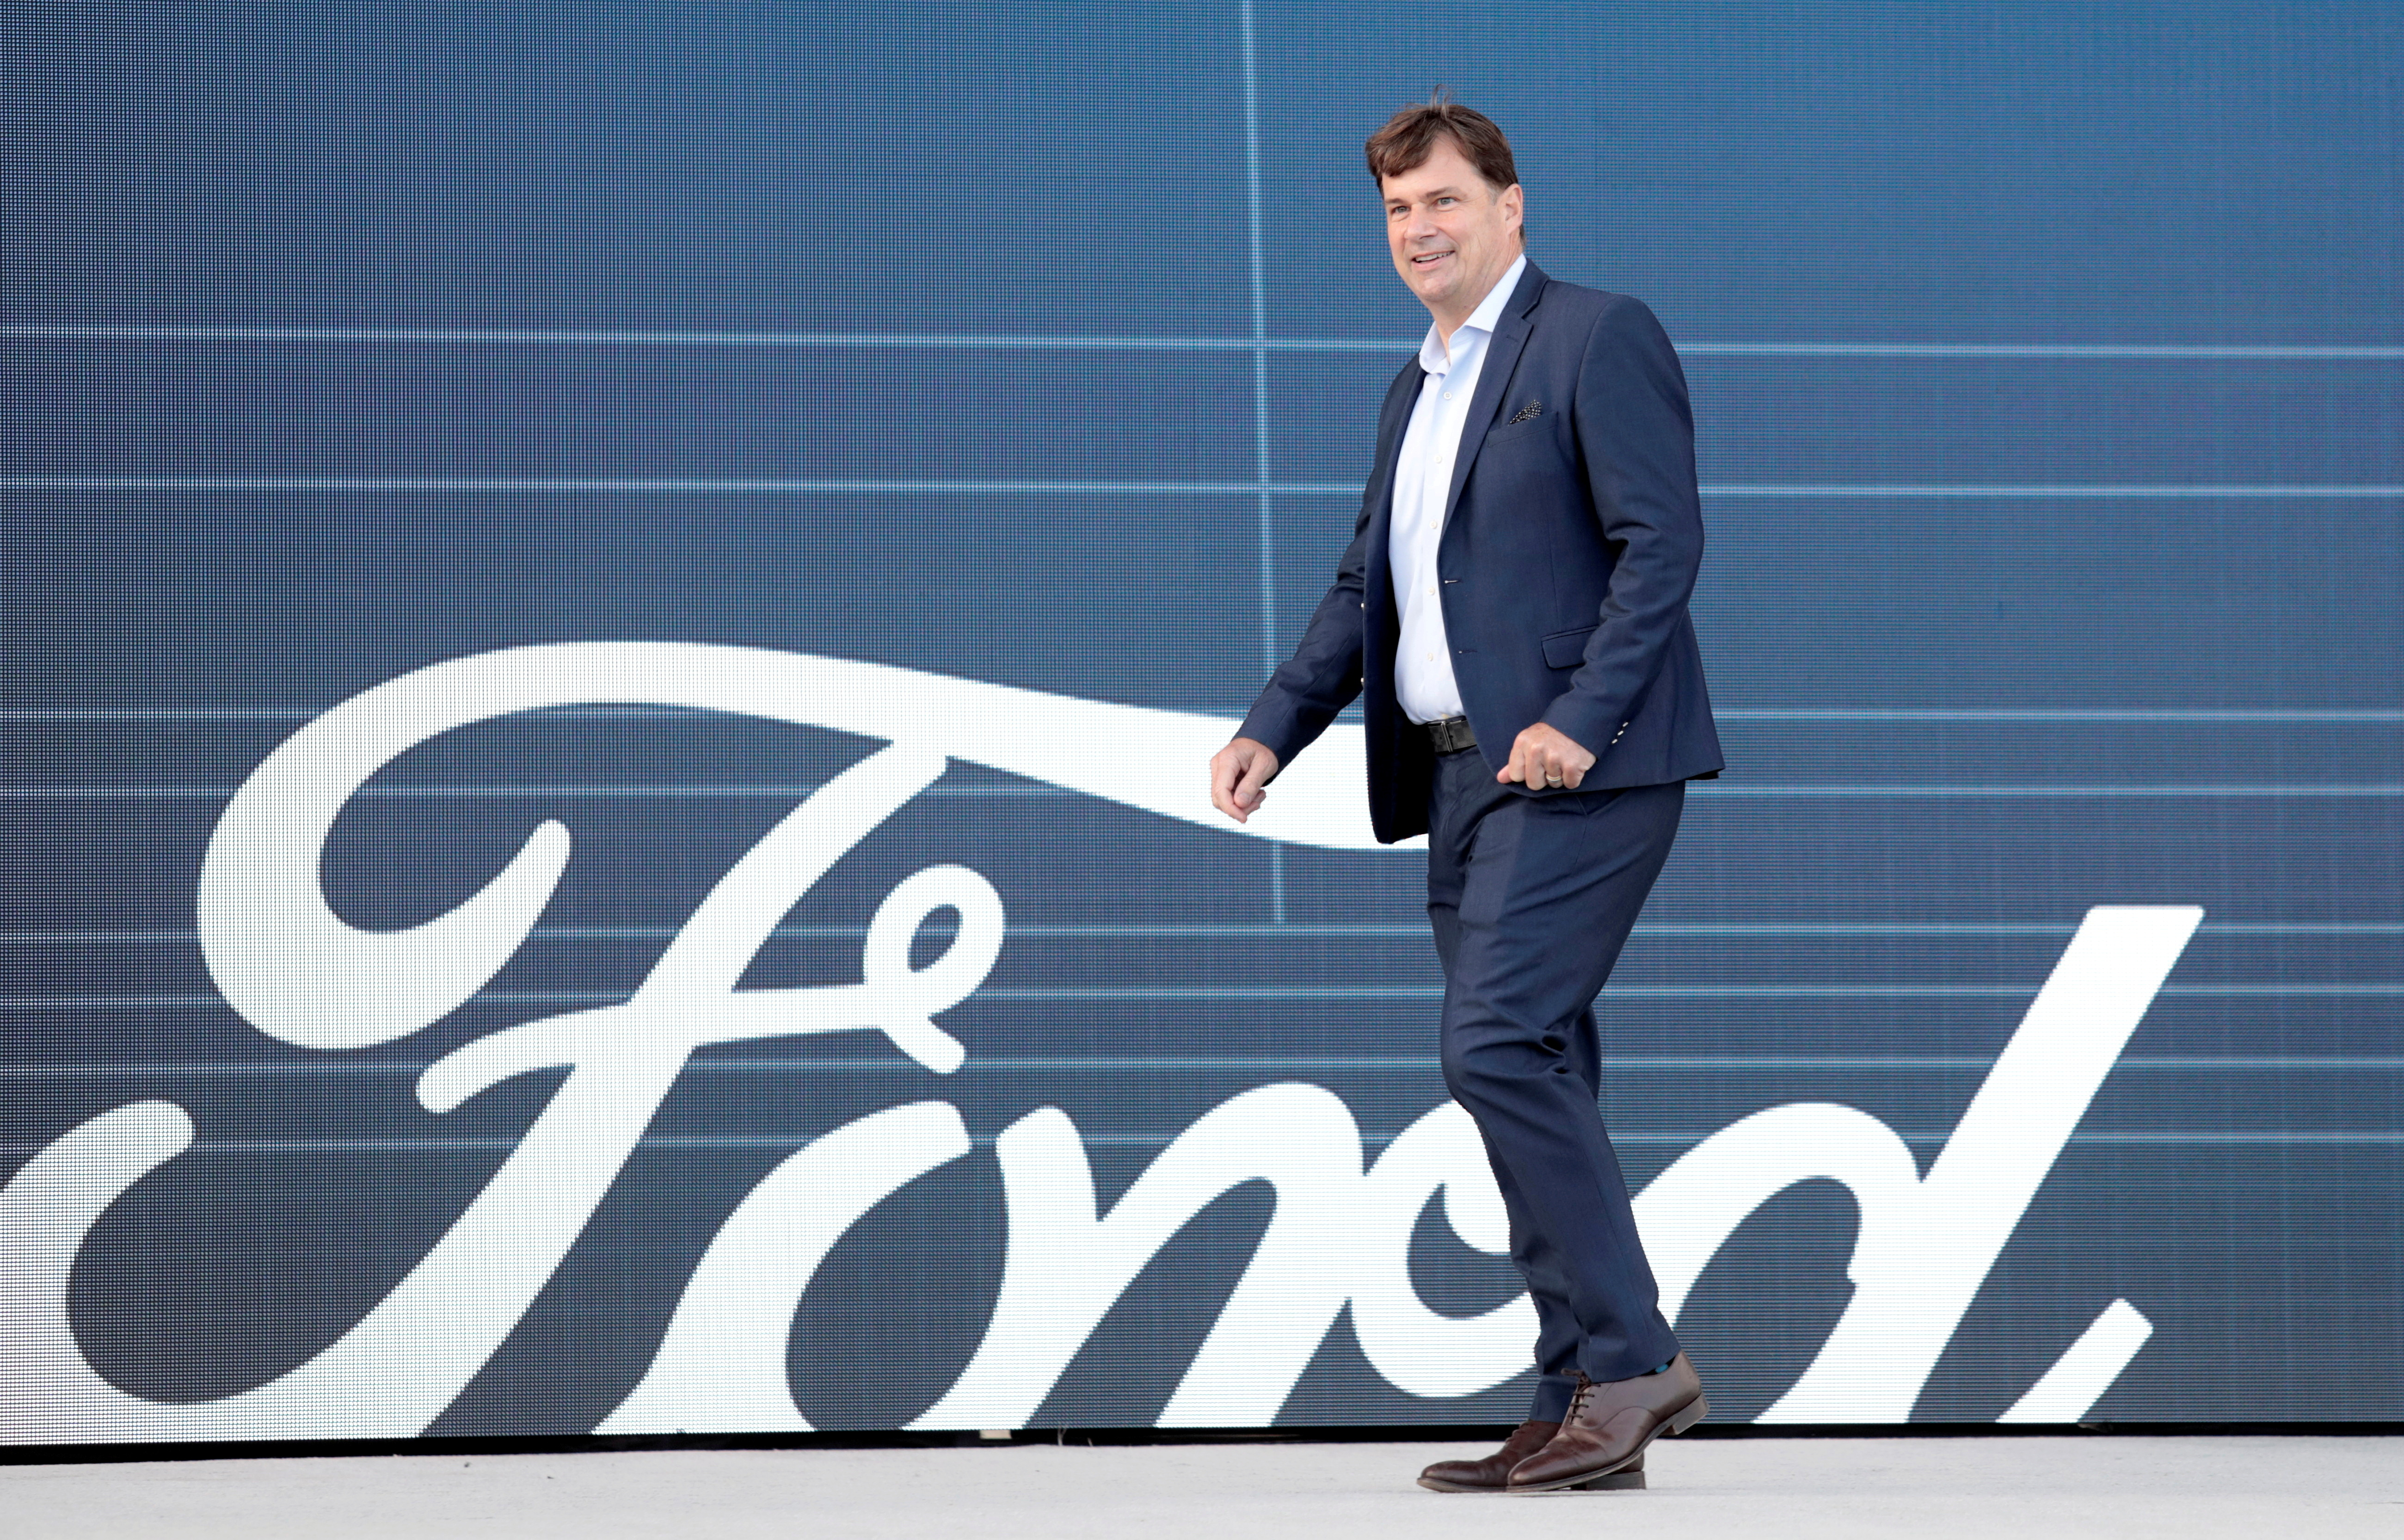 Ford Motor Co. CEO Jim Farley walks to speak at a news conference at the Rouge Complex in Dearborn, Michigan, U.S. September 17, 2020. REUTERS/Rebecca Cook/File Photo